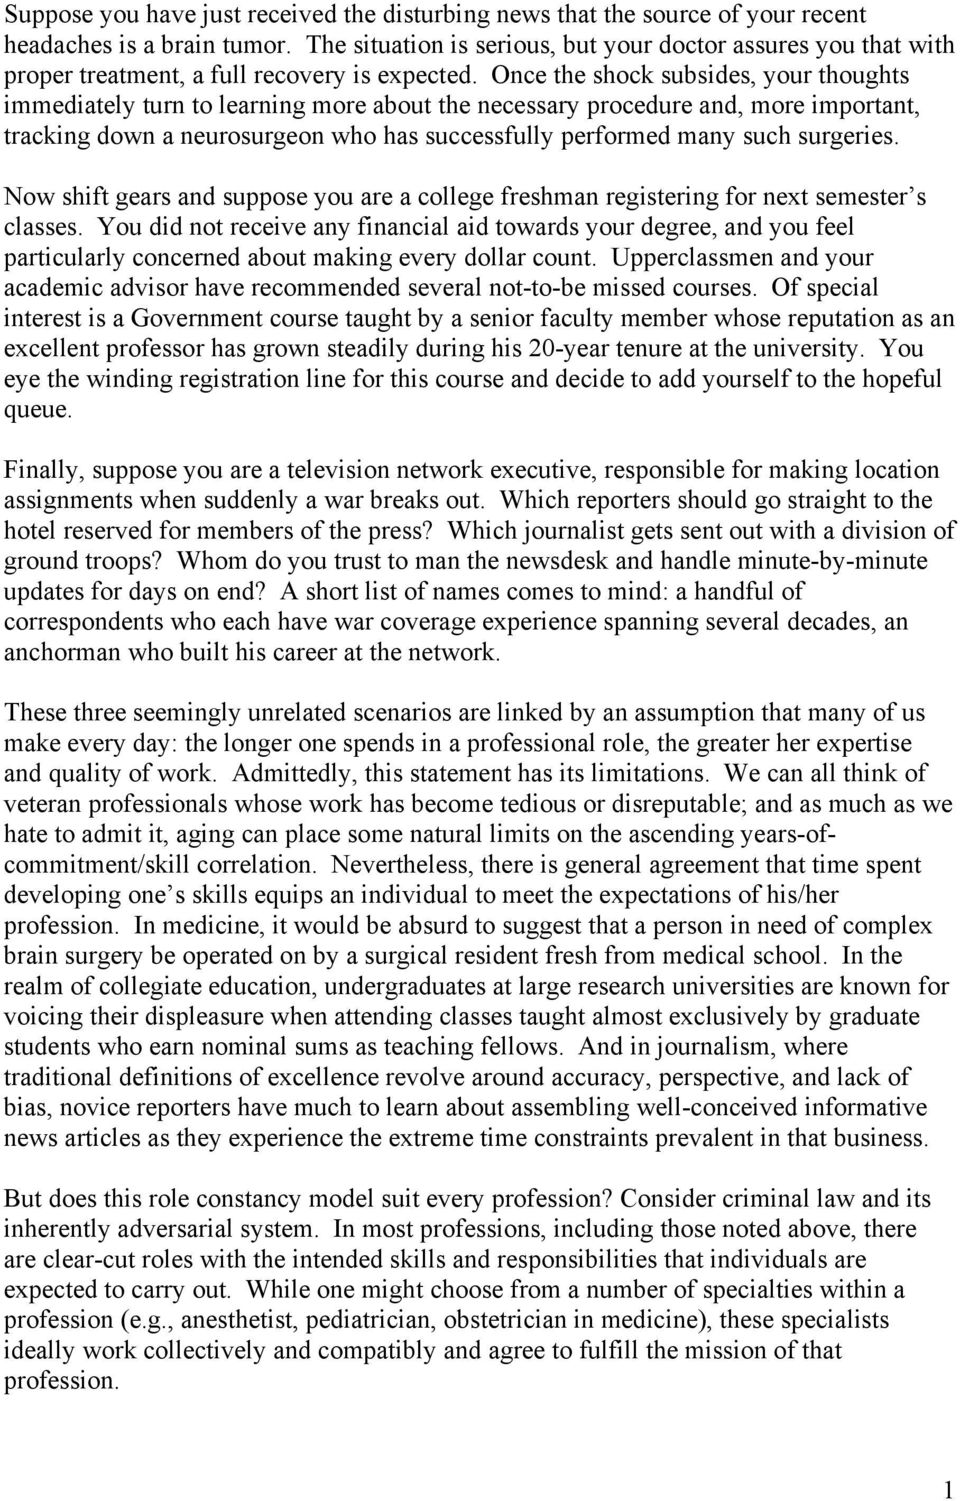 Once the shock subsides, your thoughts immediately turn to learning more about the necessary procedure and, more important, tracking down a neurosurgeon who has successfully performed many such